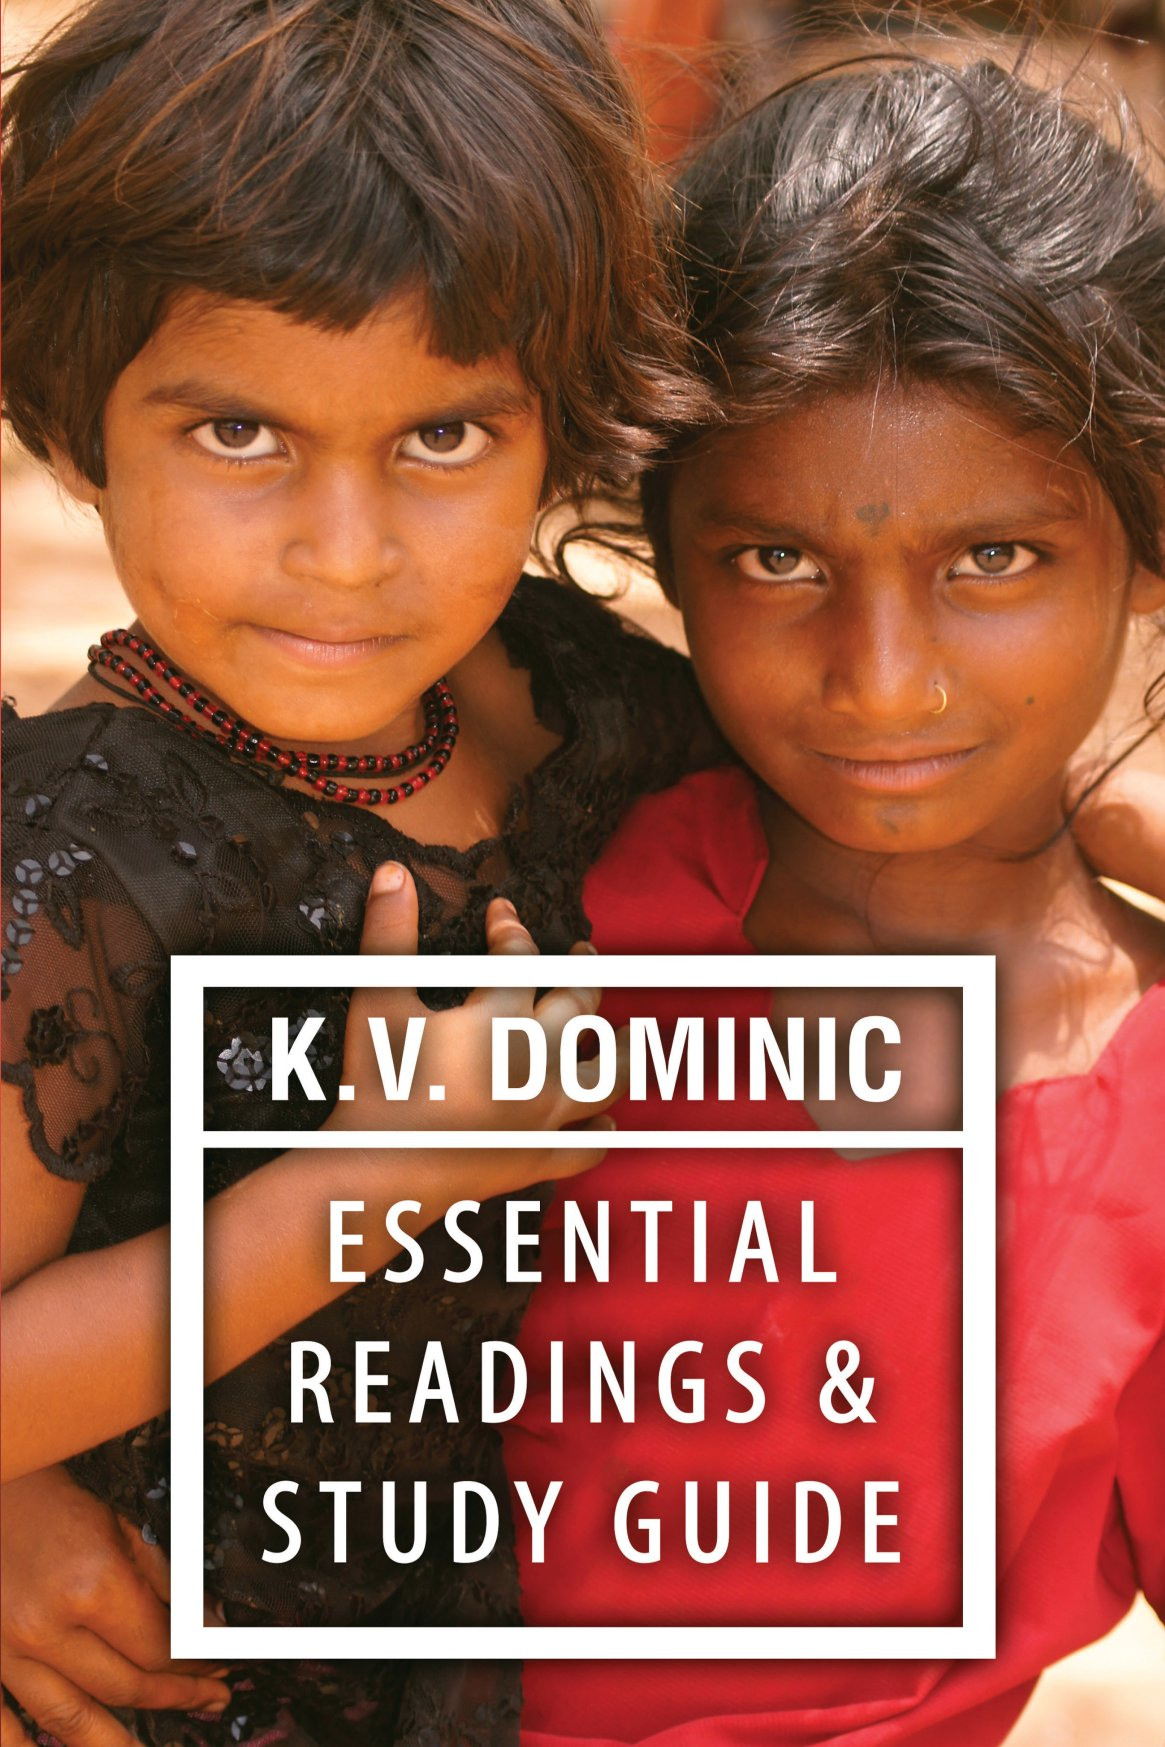 K.V. Dominic Essential Readings: Poems about Social Justice, Women's Rights, and the Environment 978-1-61599-302-4